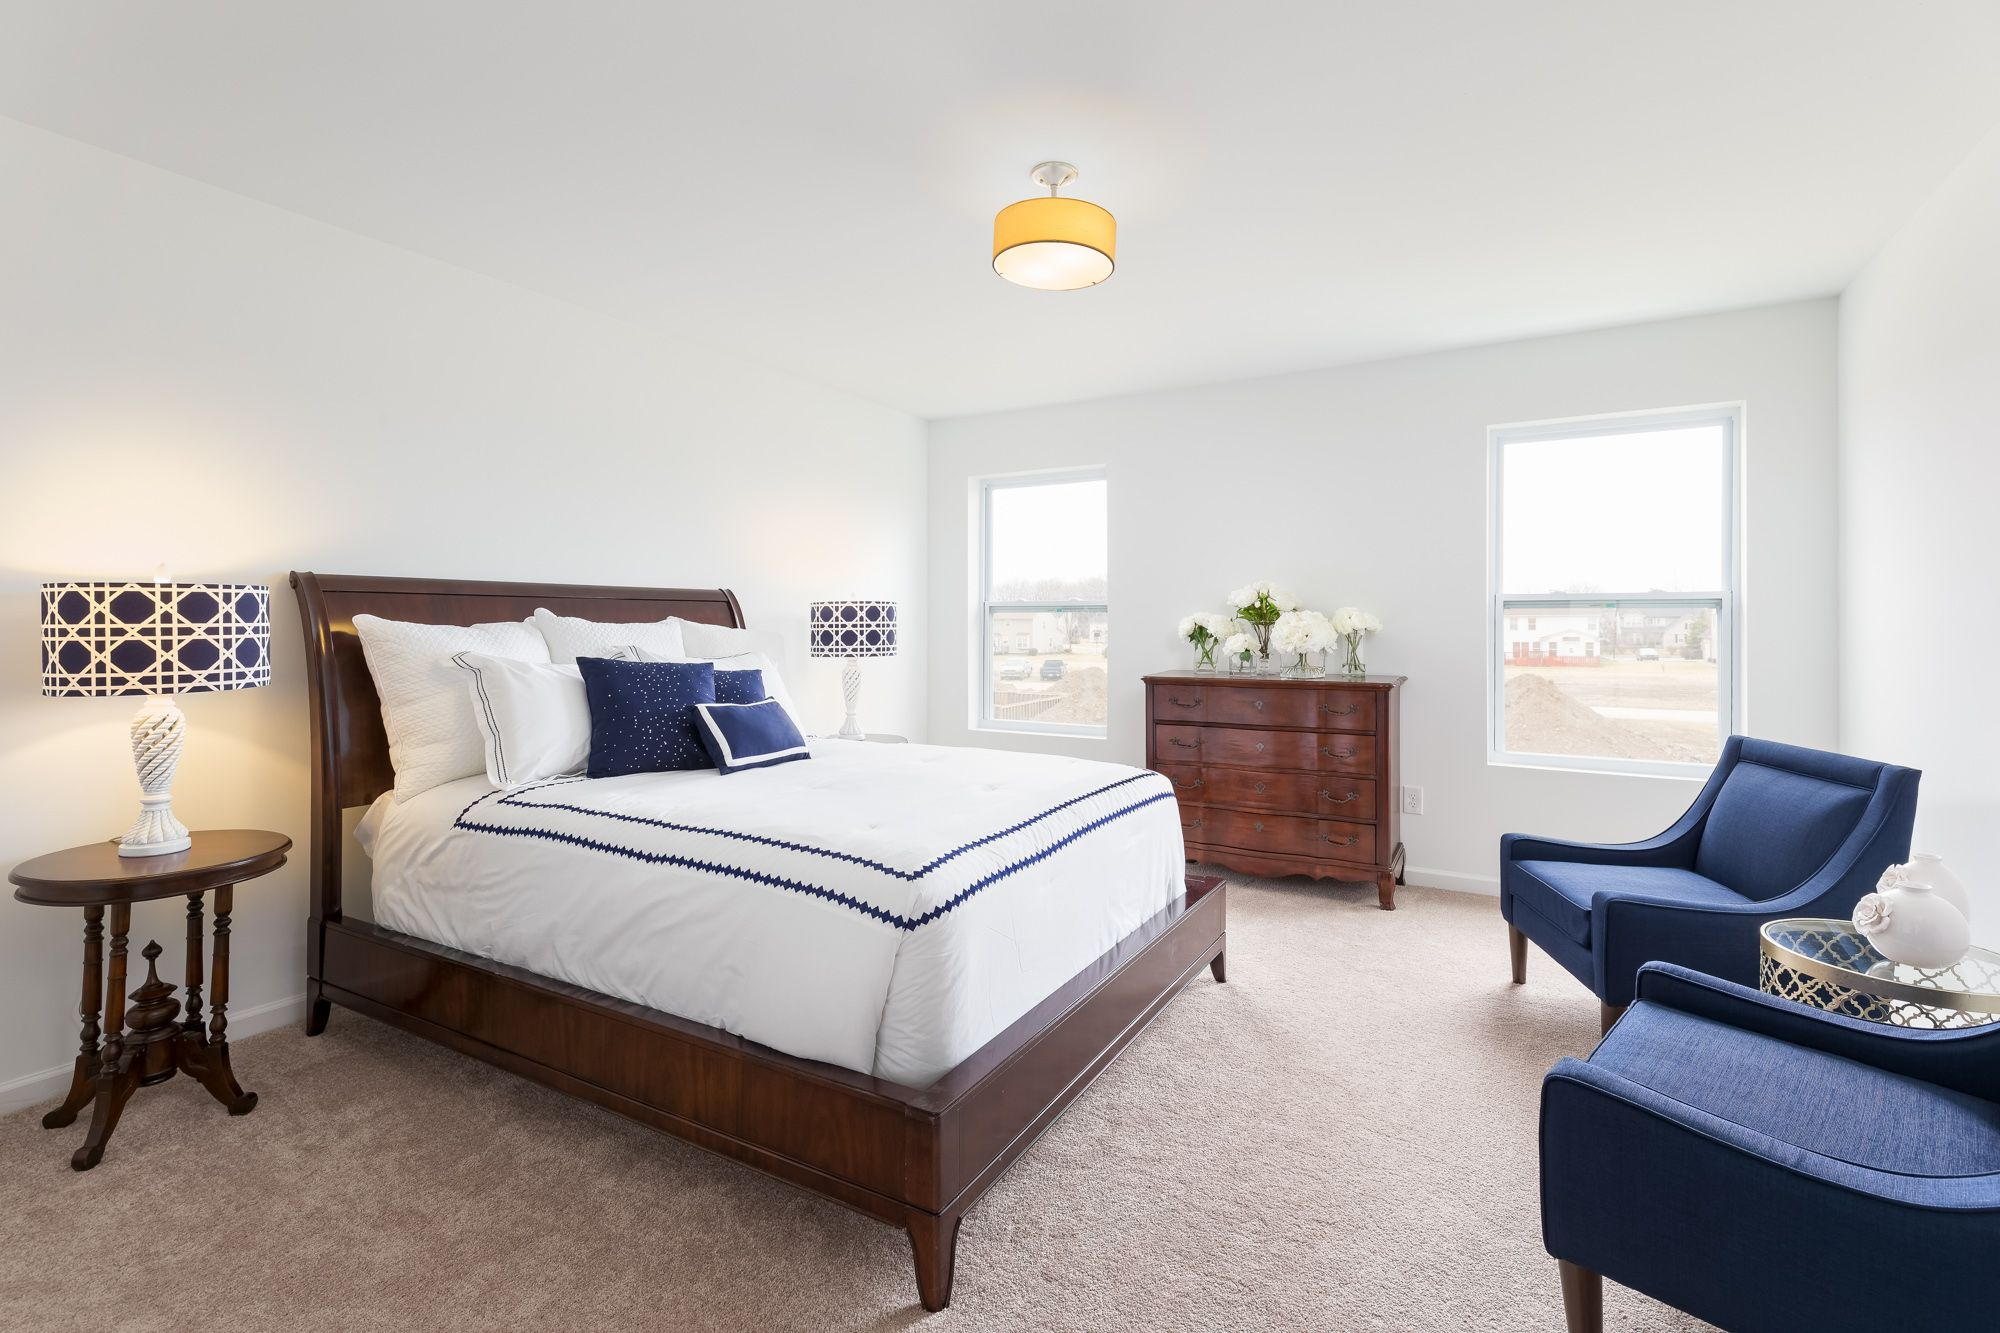 Bedroom featured in the Elements 2070 By Allen Edwin Homes in Flint, MI